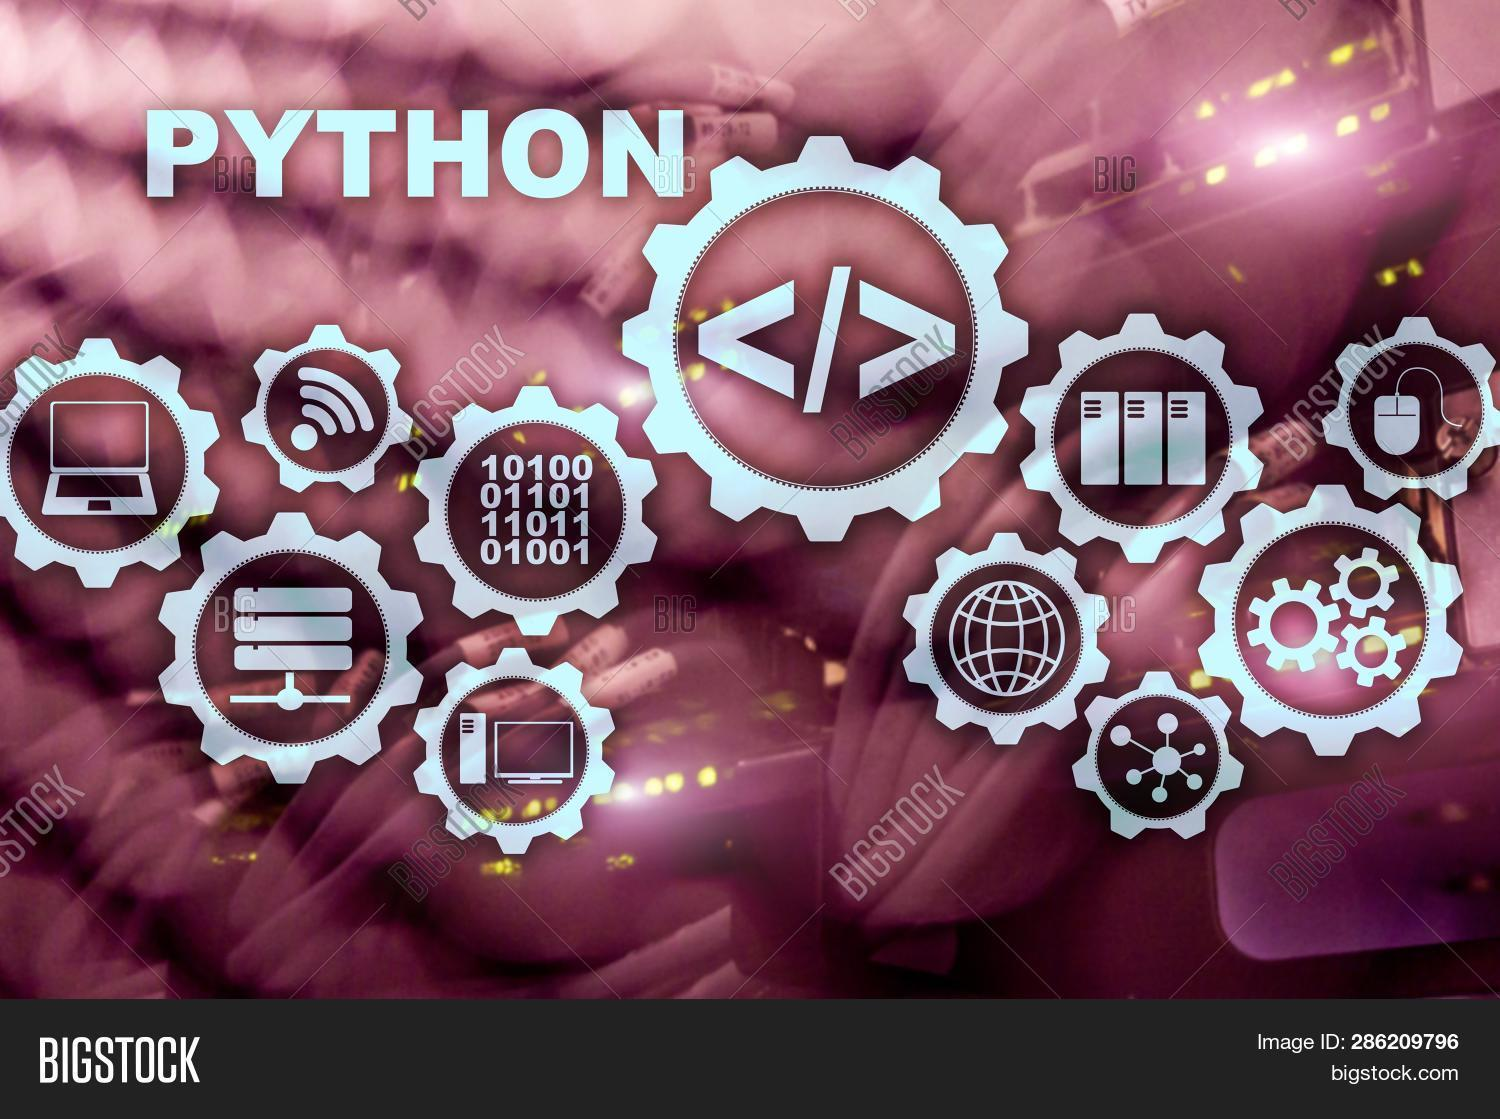 Python Programming Image & Photo (Free Trial) | Bigstock